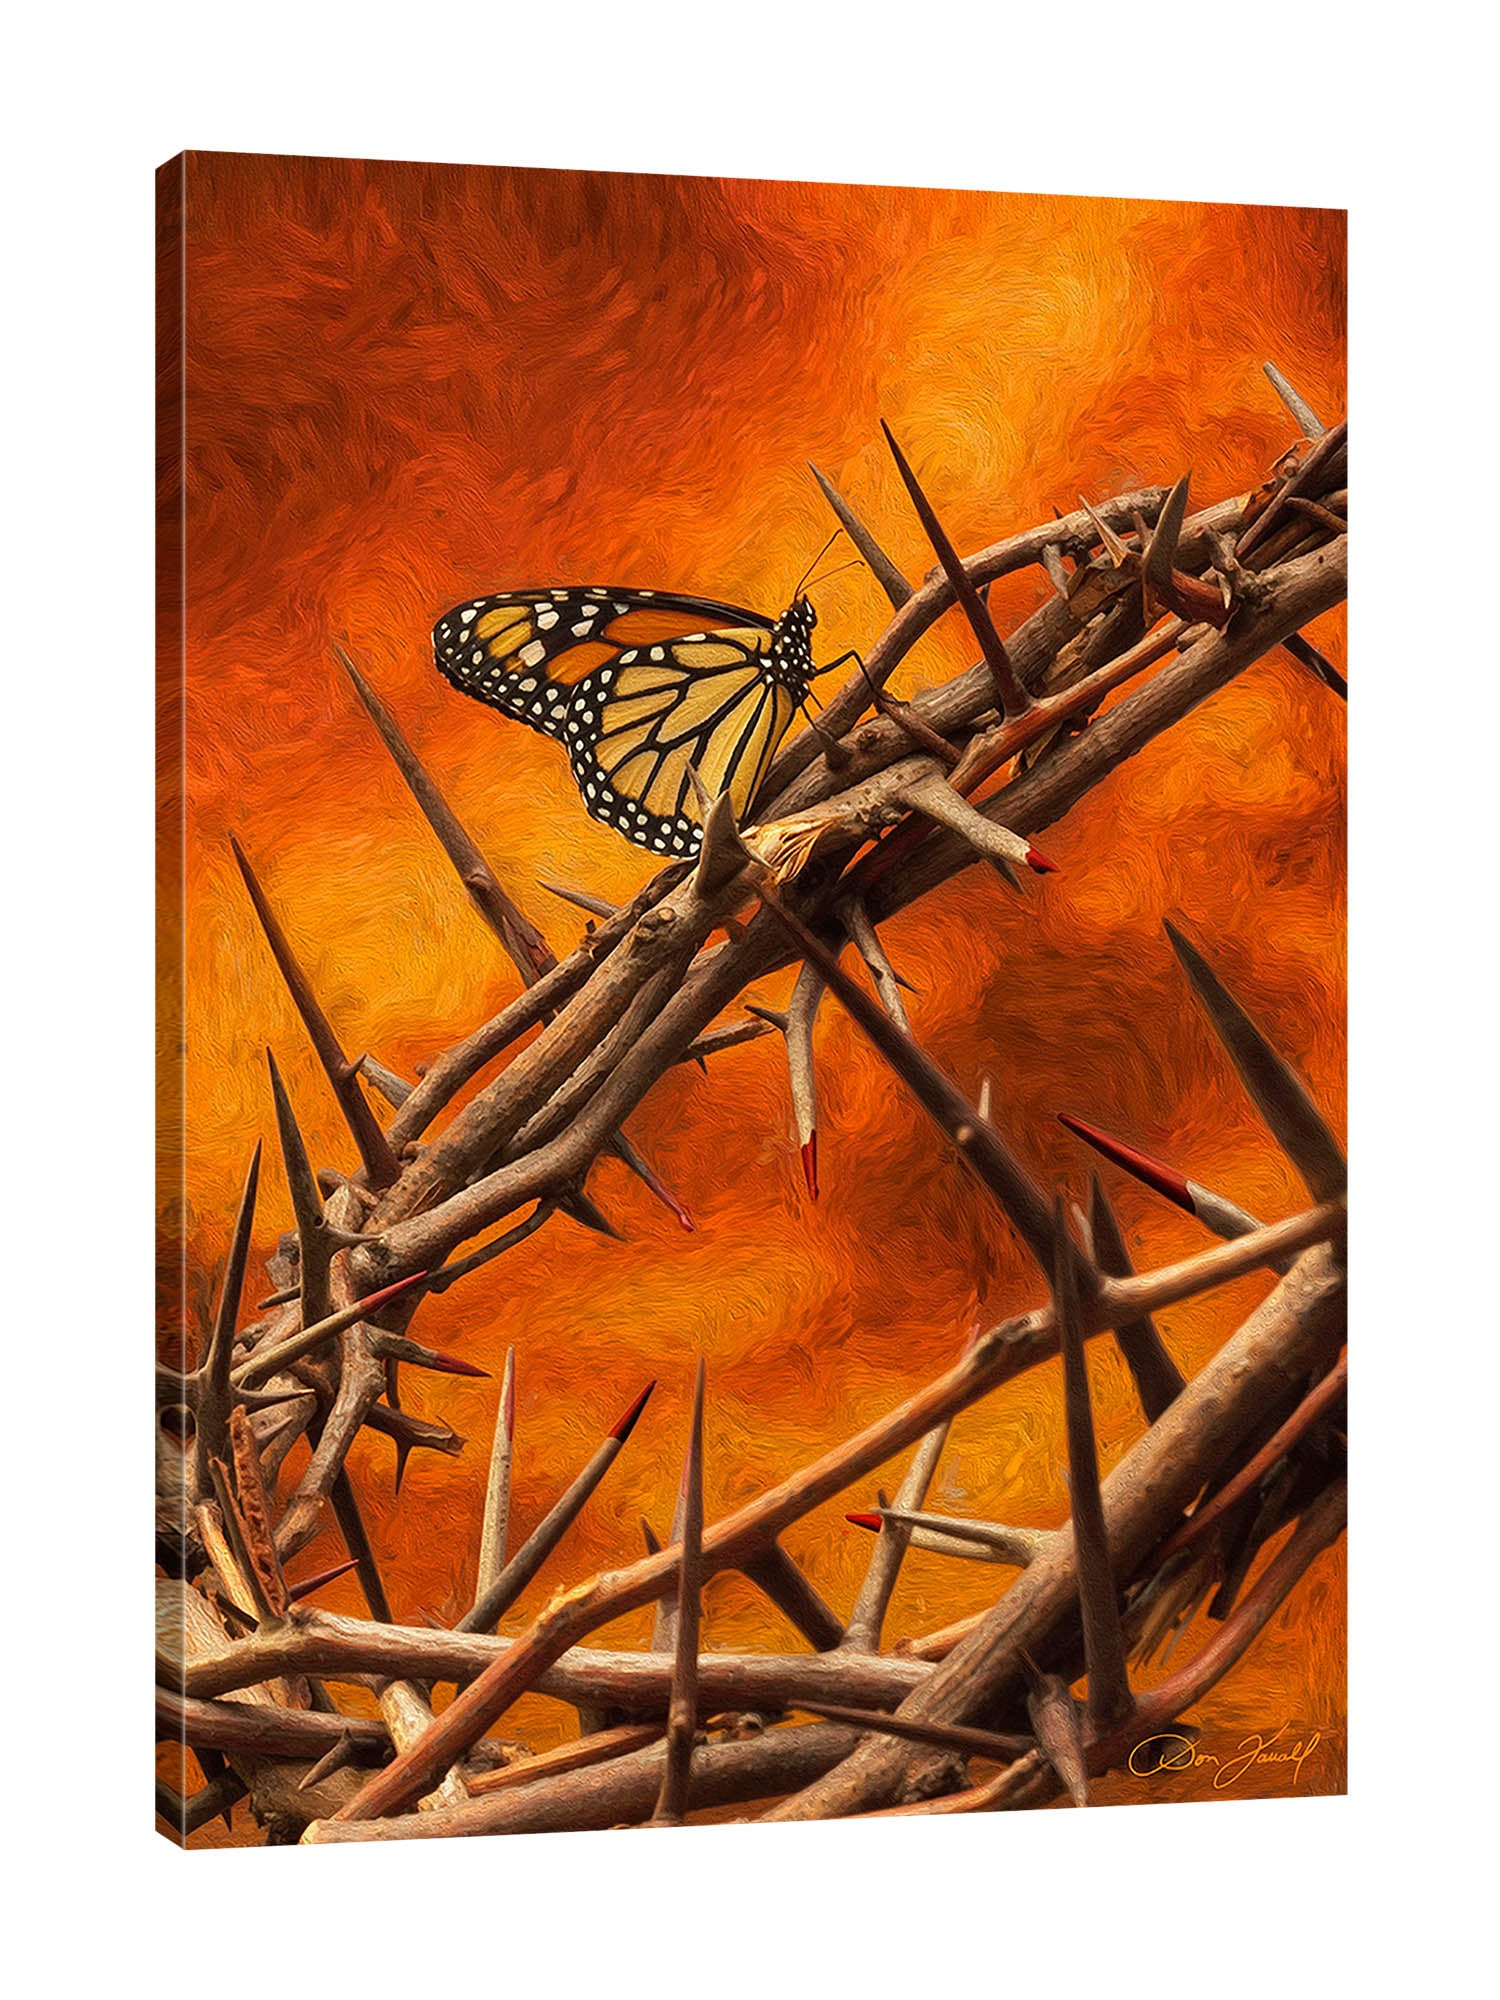 Don-Farrall,Modern & Contemporary,Animals,butterfly,insects,butterflies,branches,thorns,swirls,Red,Gray,Purple,Lavender Purple,Mist Gray,Black,Blue